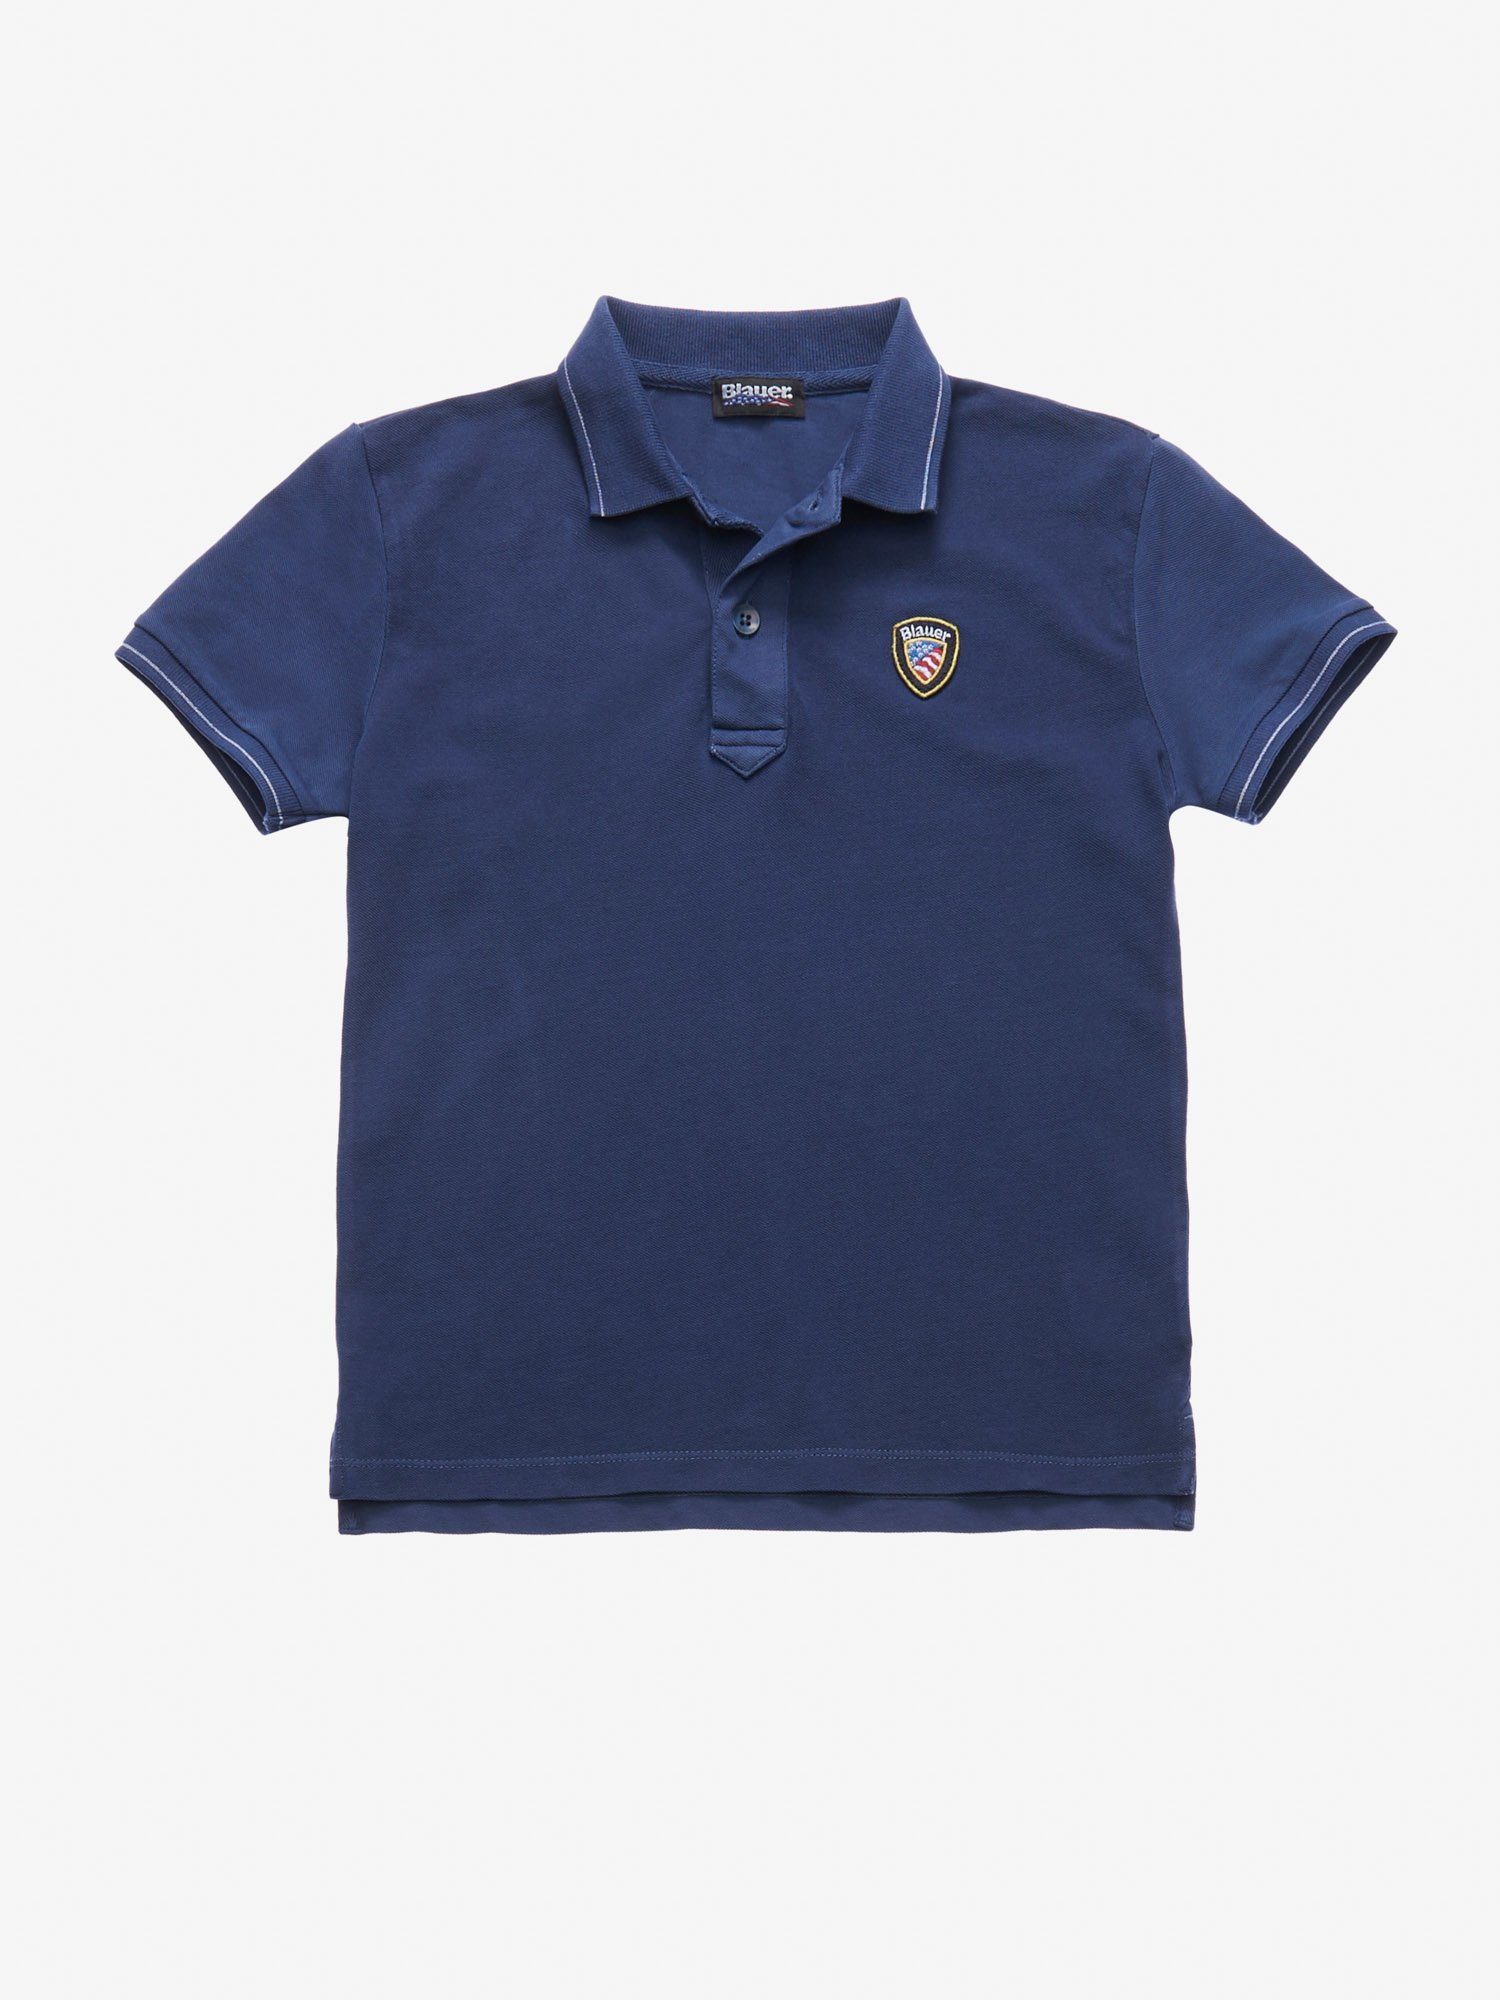 JUNIOR SHORT SLEEVE POLO SHIRT - Blauer